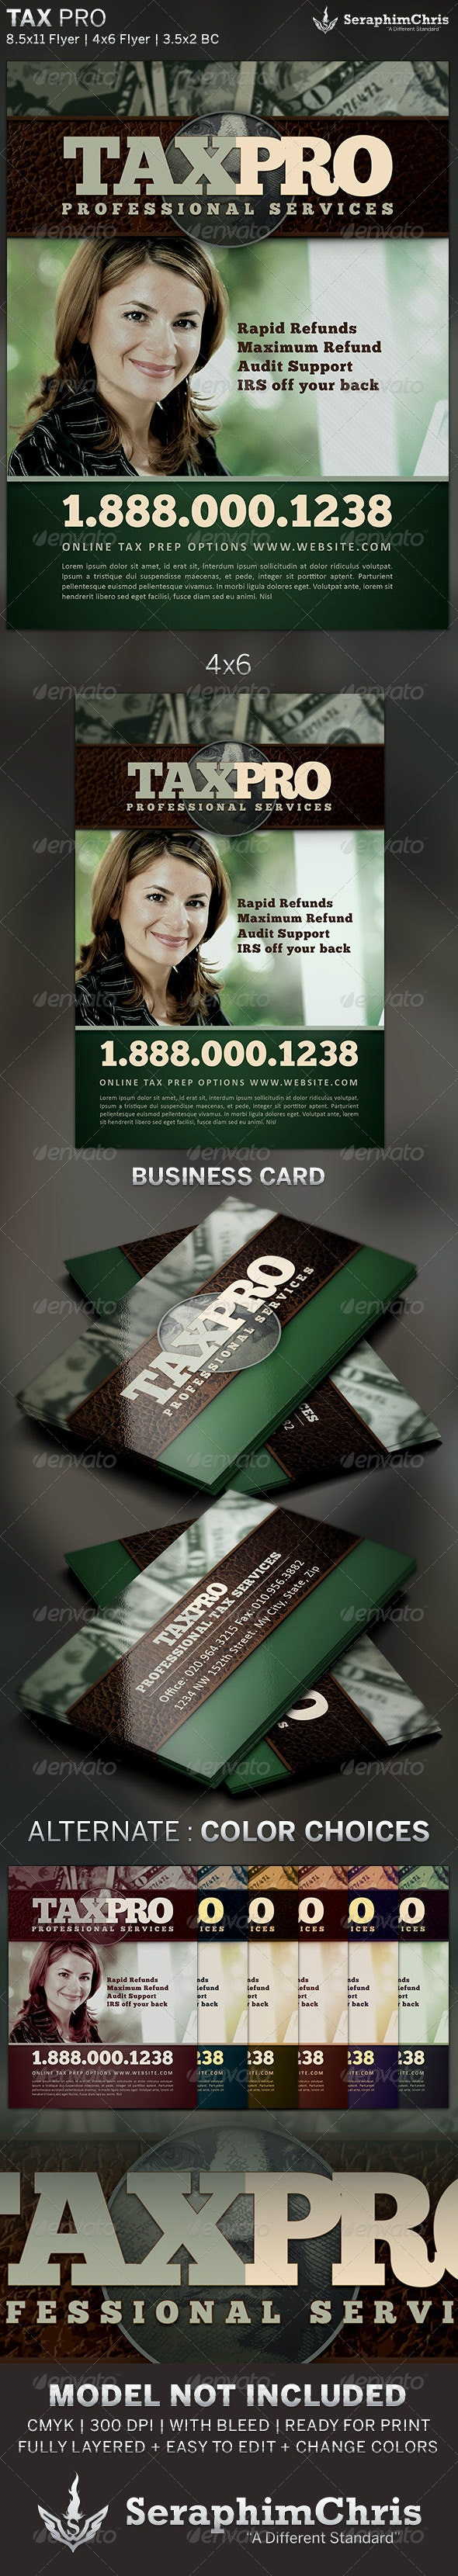 Tax Pro Flyer and Business Card Template - Corporate Flyers